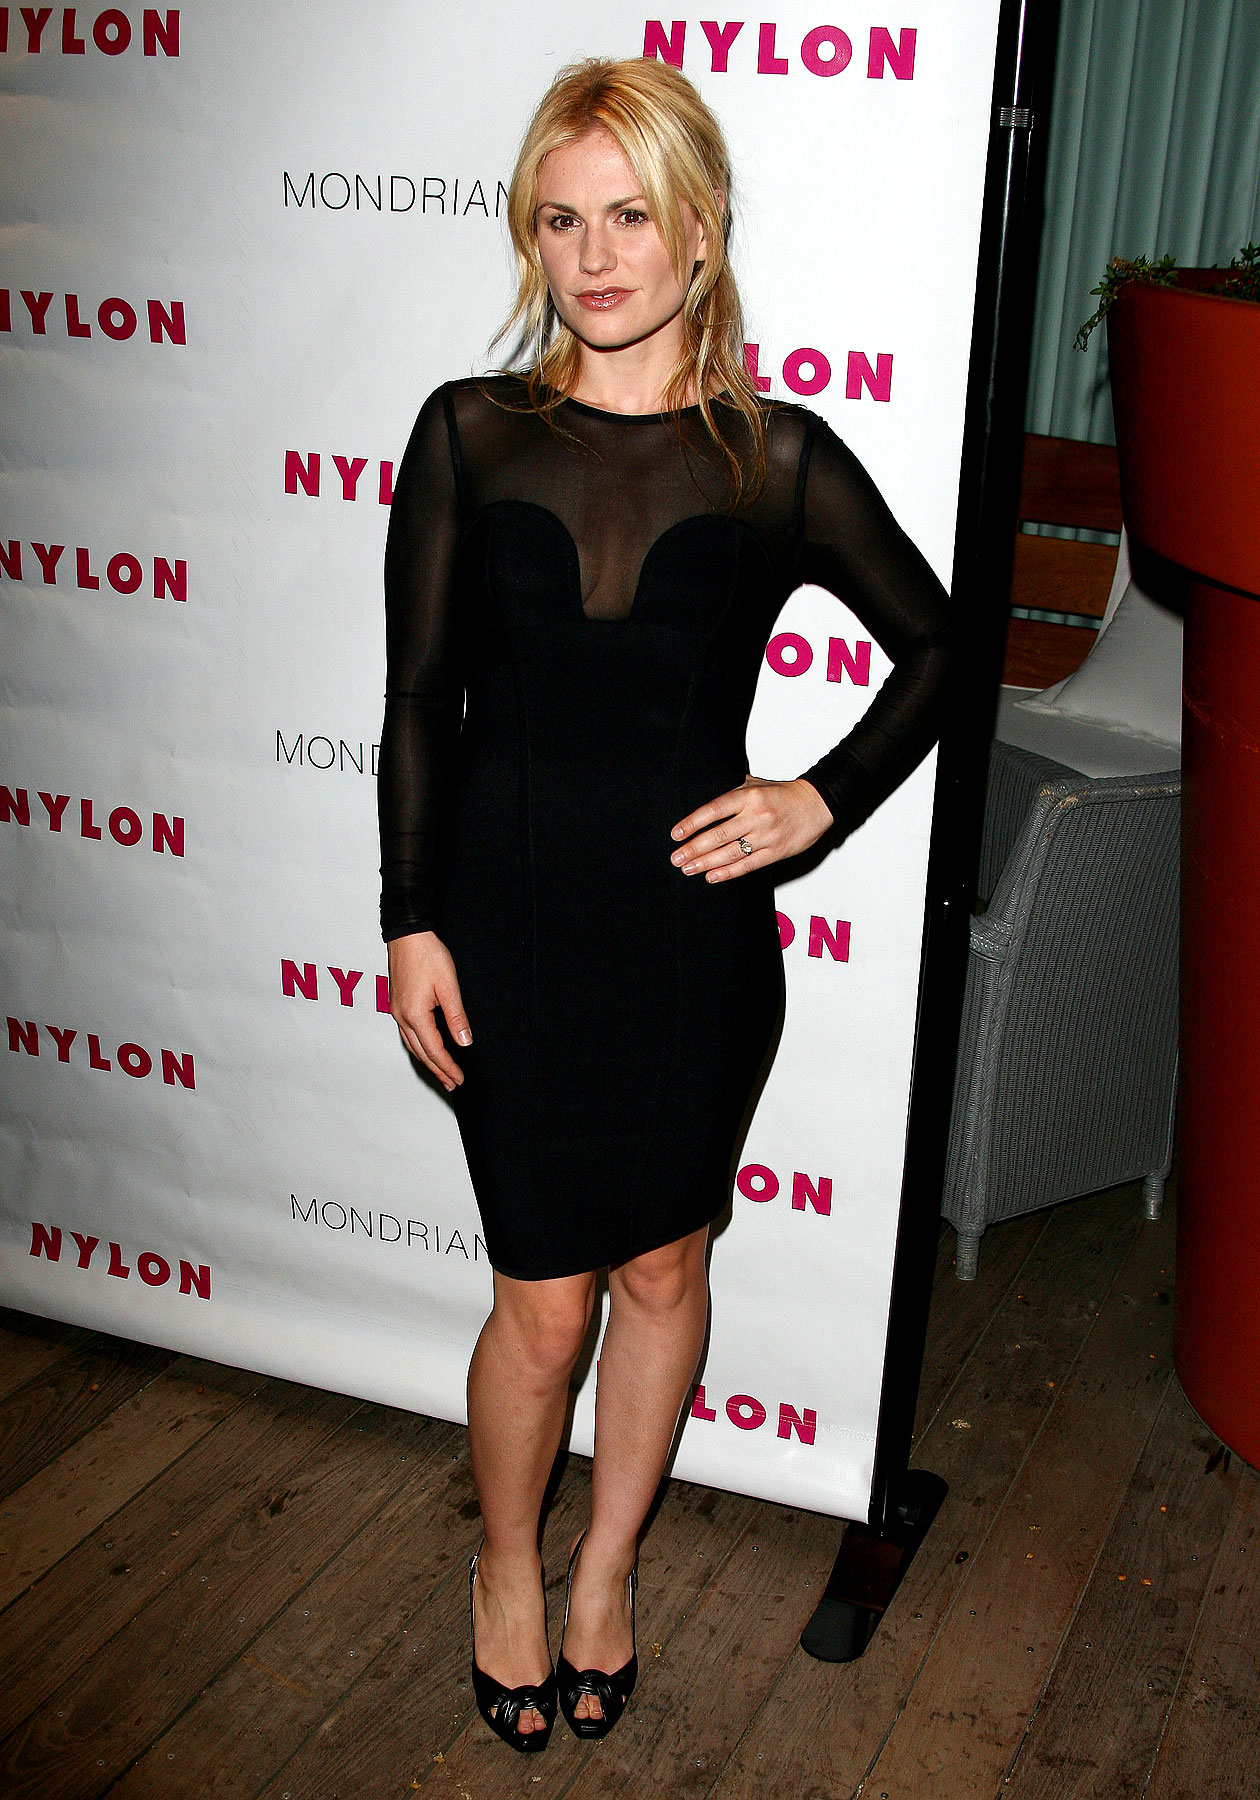 PHOTO GALLERY: Nylon Mag Celebrates Cover Girl Anna Paquin